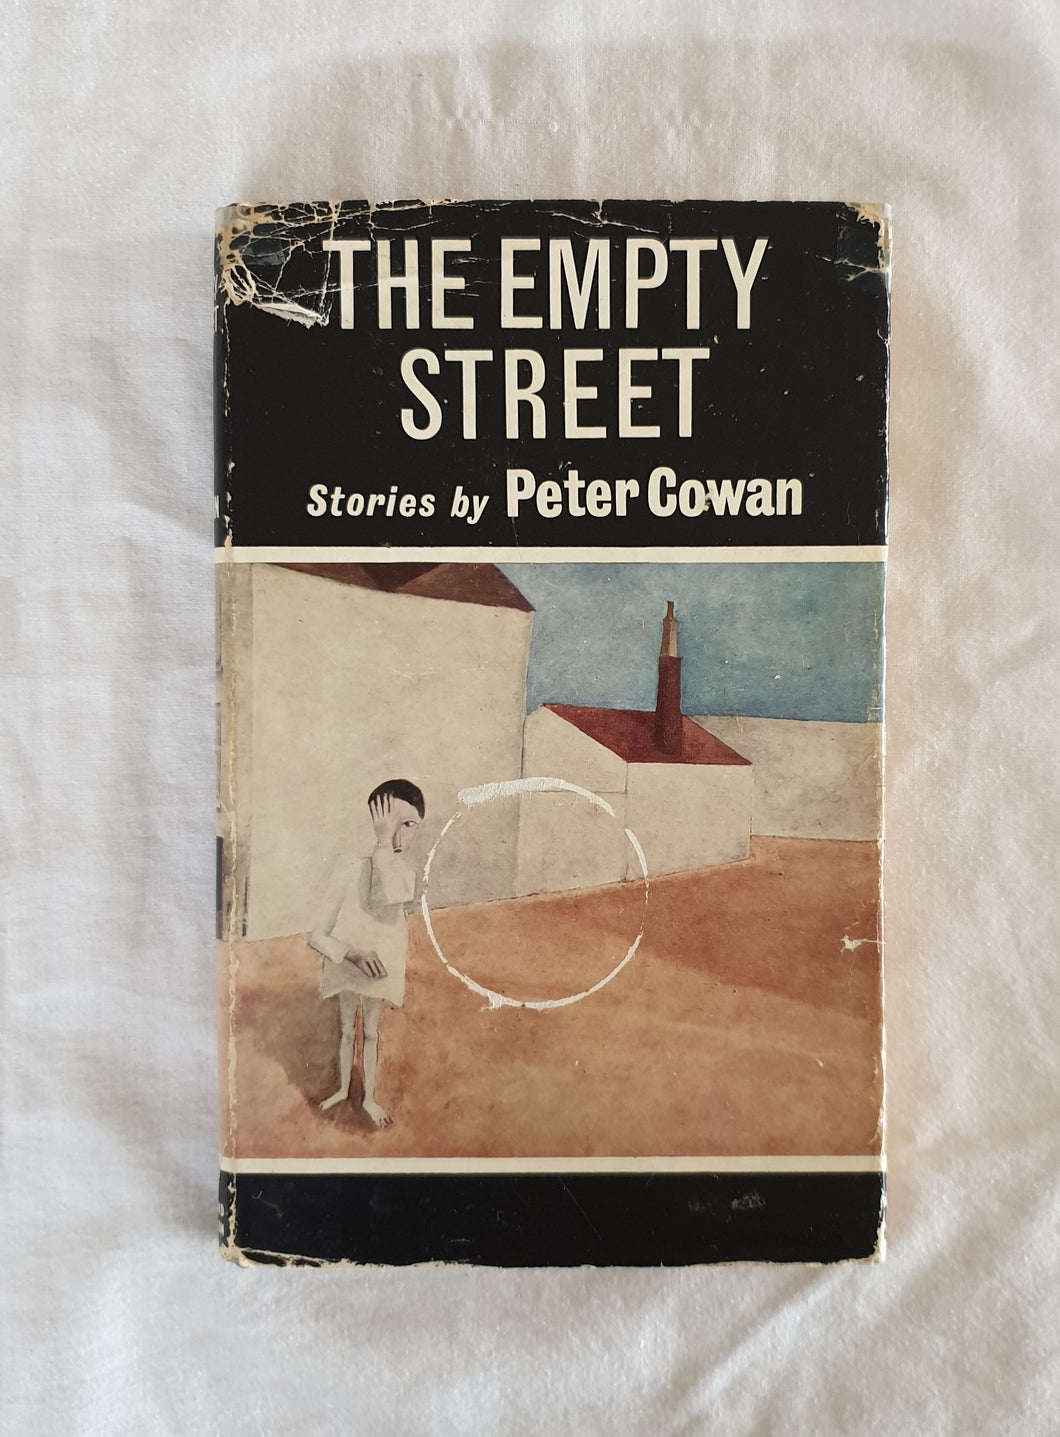 The Empty Street by Peter Cowan